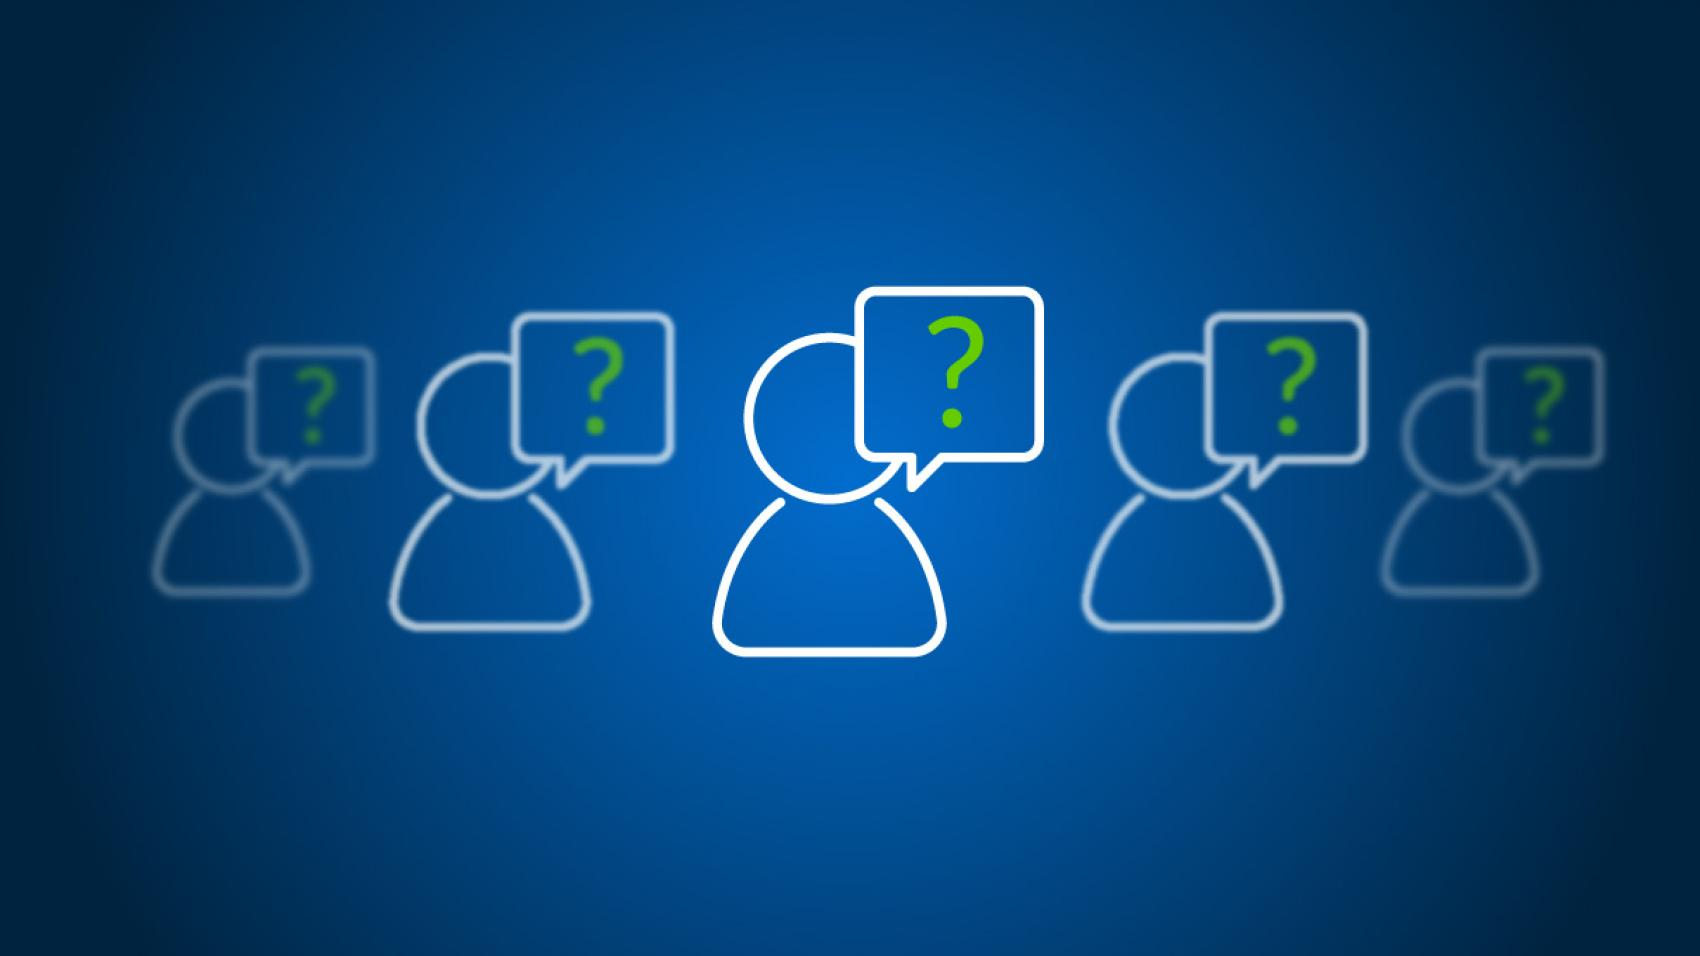 5 Questions You Should Ask Your Audit Committee